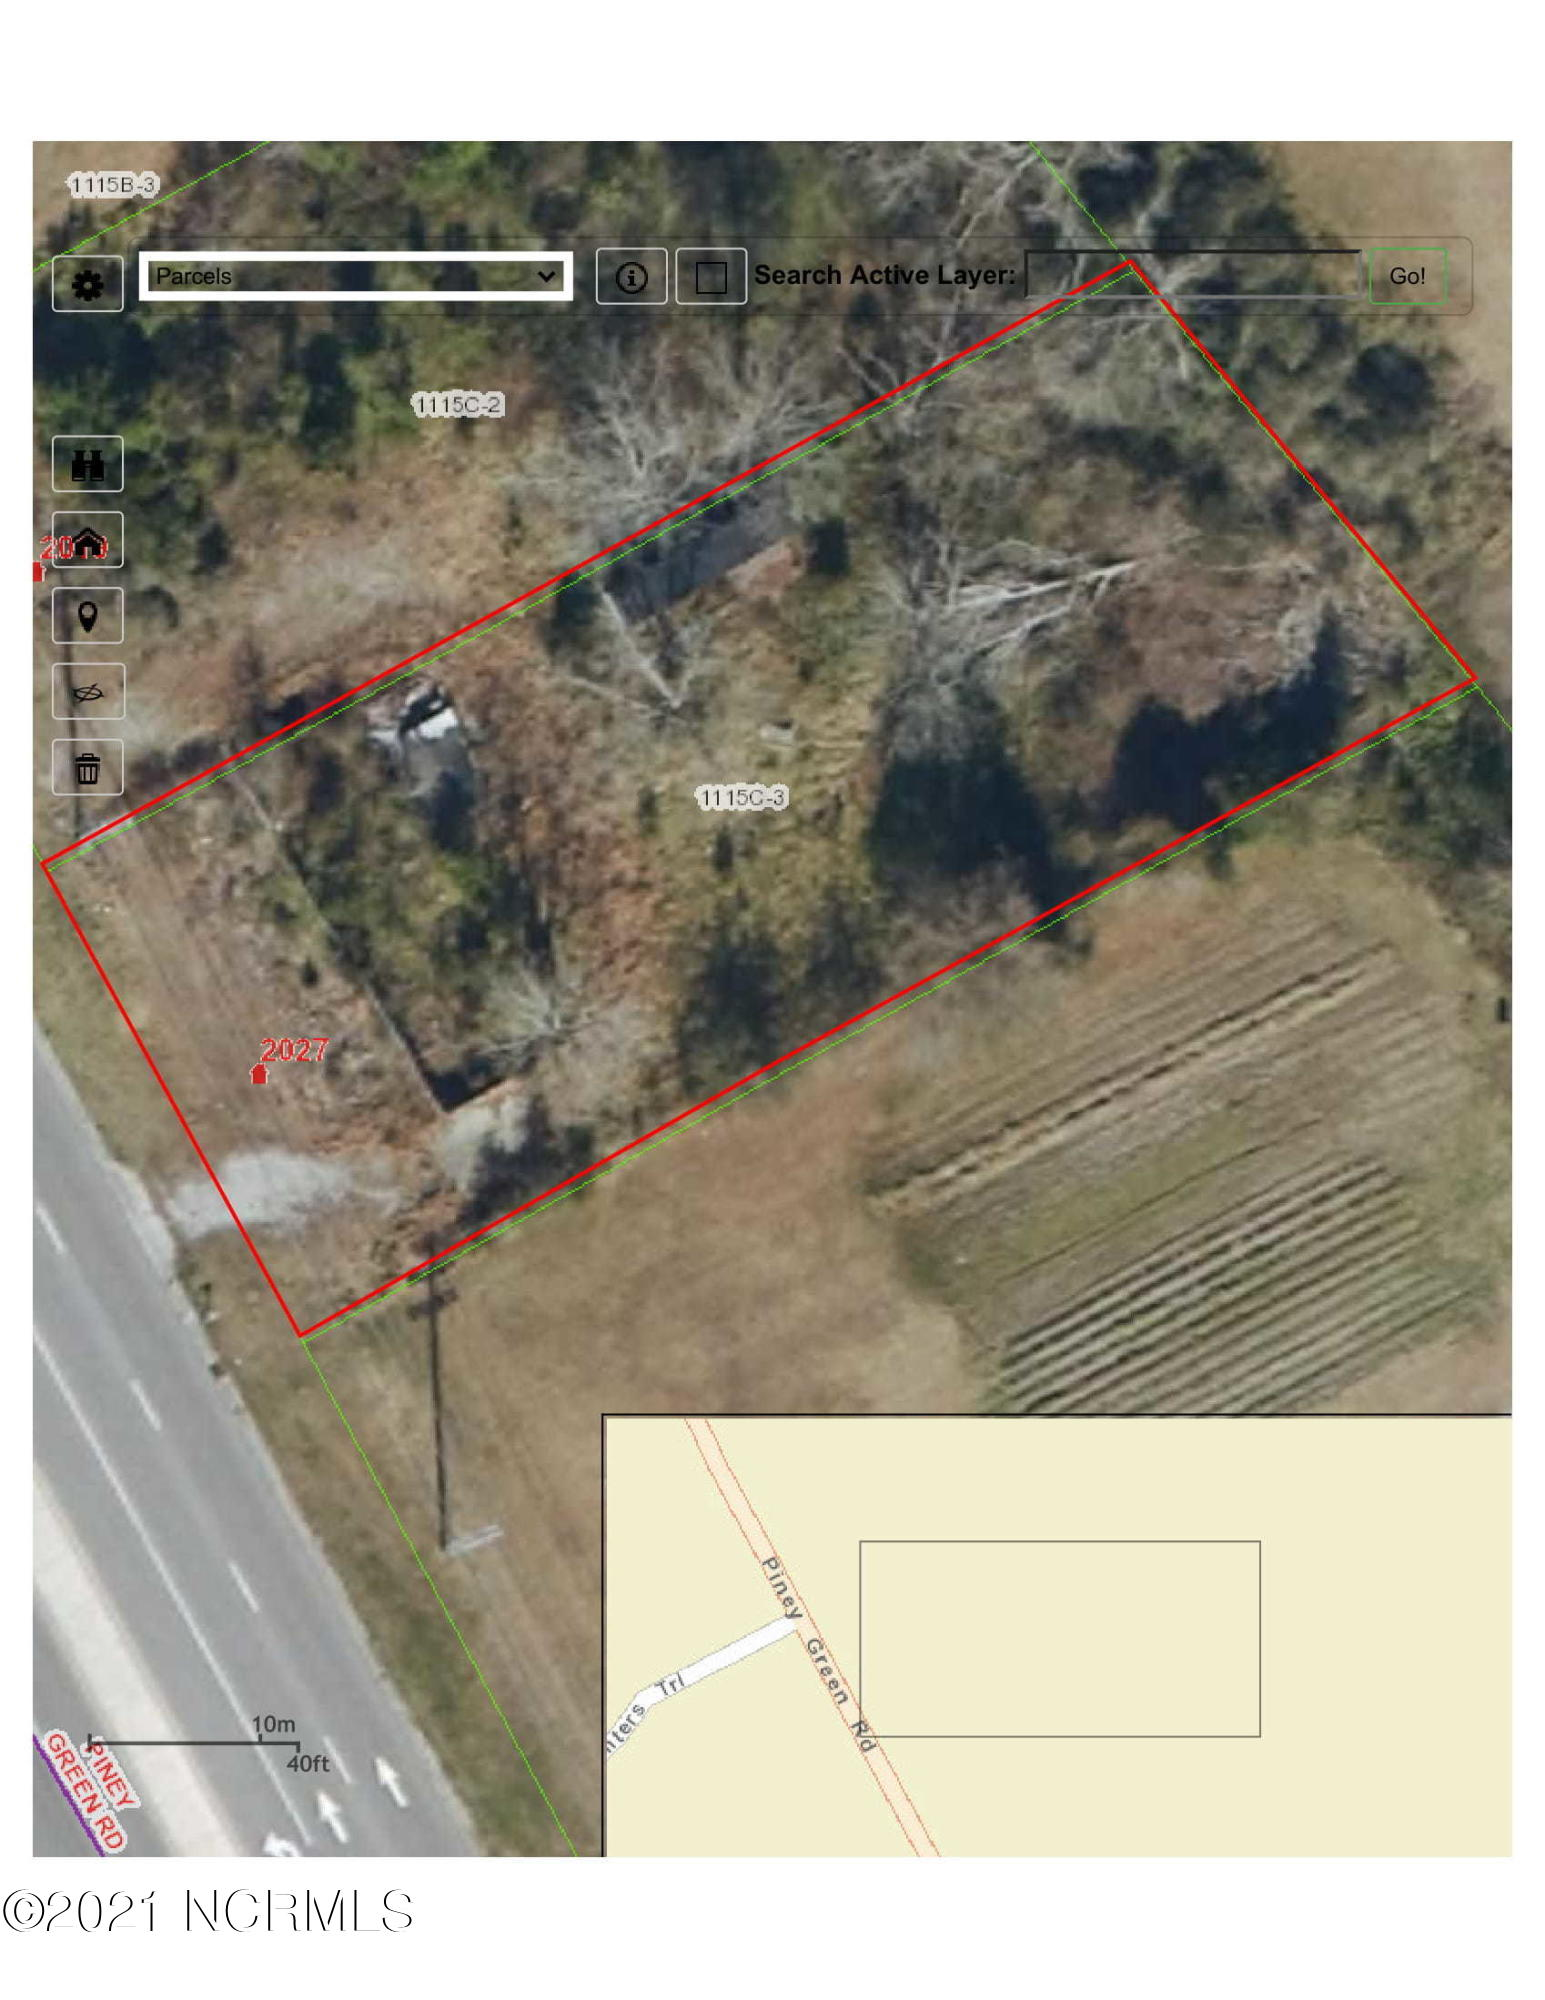 Investment Opportunity! Don't miss out on this 1/2 acre lot that the sellers want to sell both lots together that would be over an acre total with 203' of road frontage on a busy highway.  There is already a red light in front of the property.  Has access to Water and Power.Call me with any questions you may have.